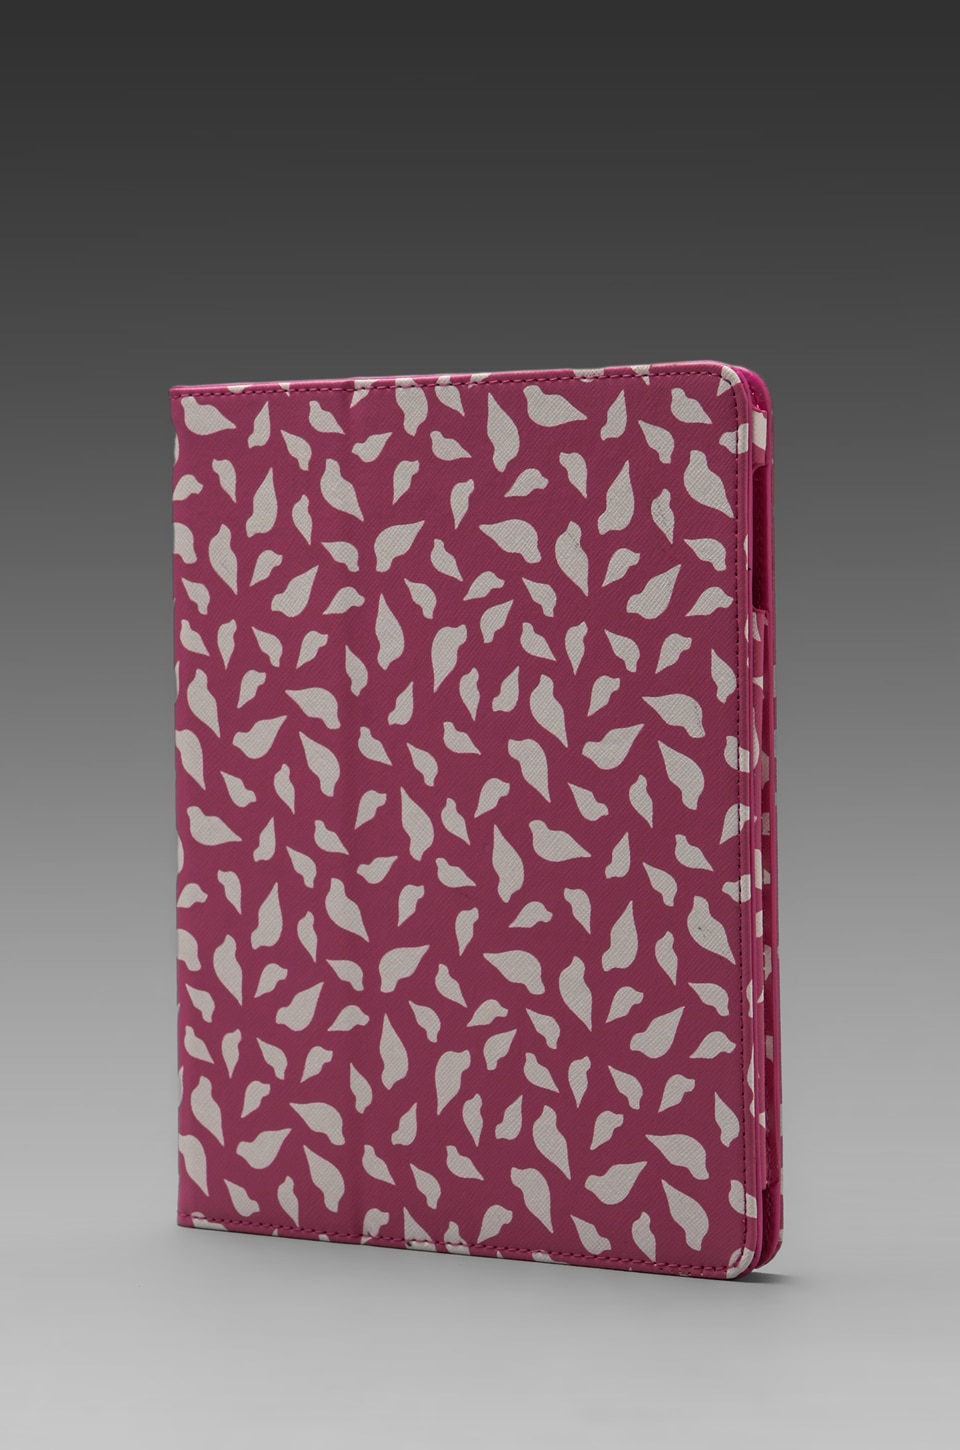 Diane von Furstenberg Printed Lips Ipad Book Cover in Pink/White